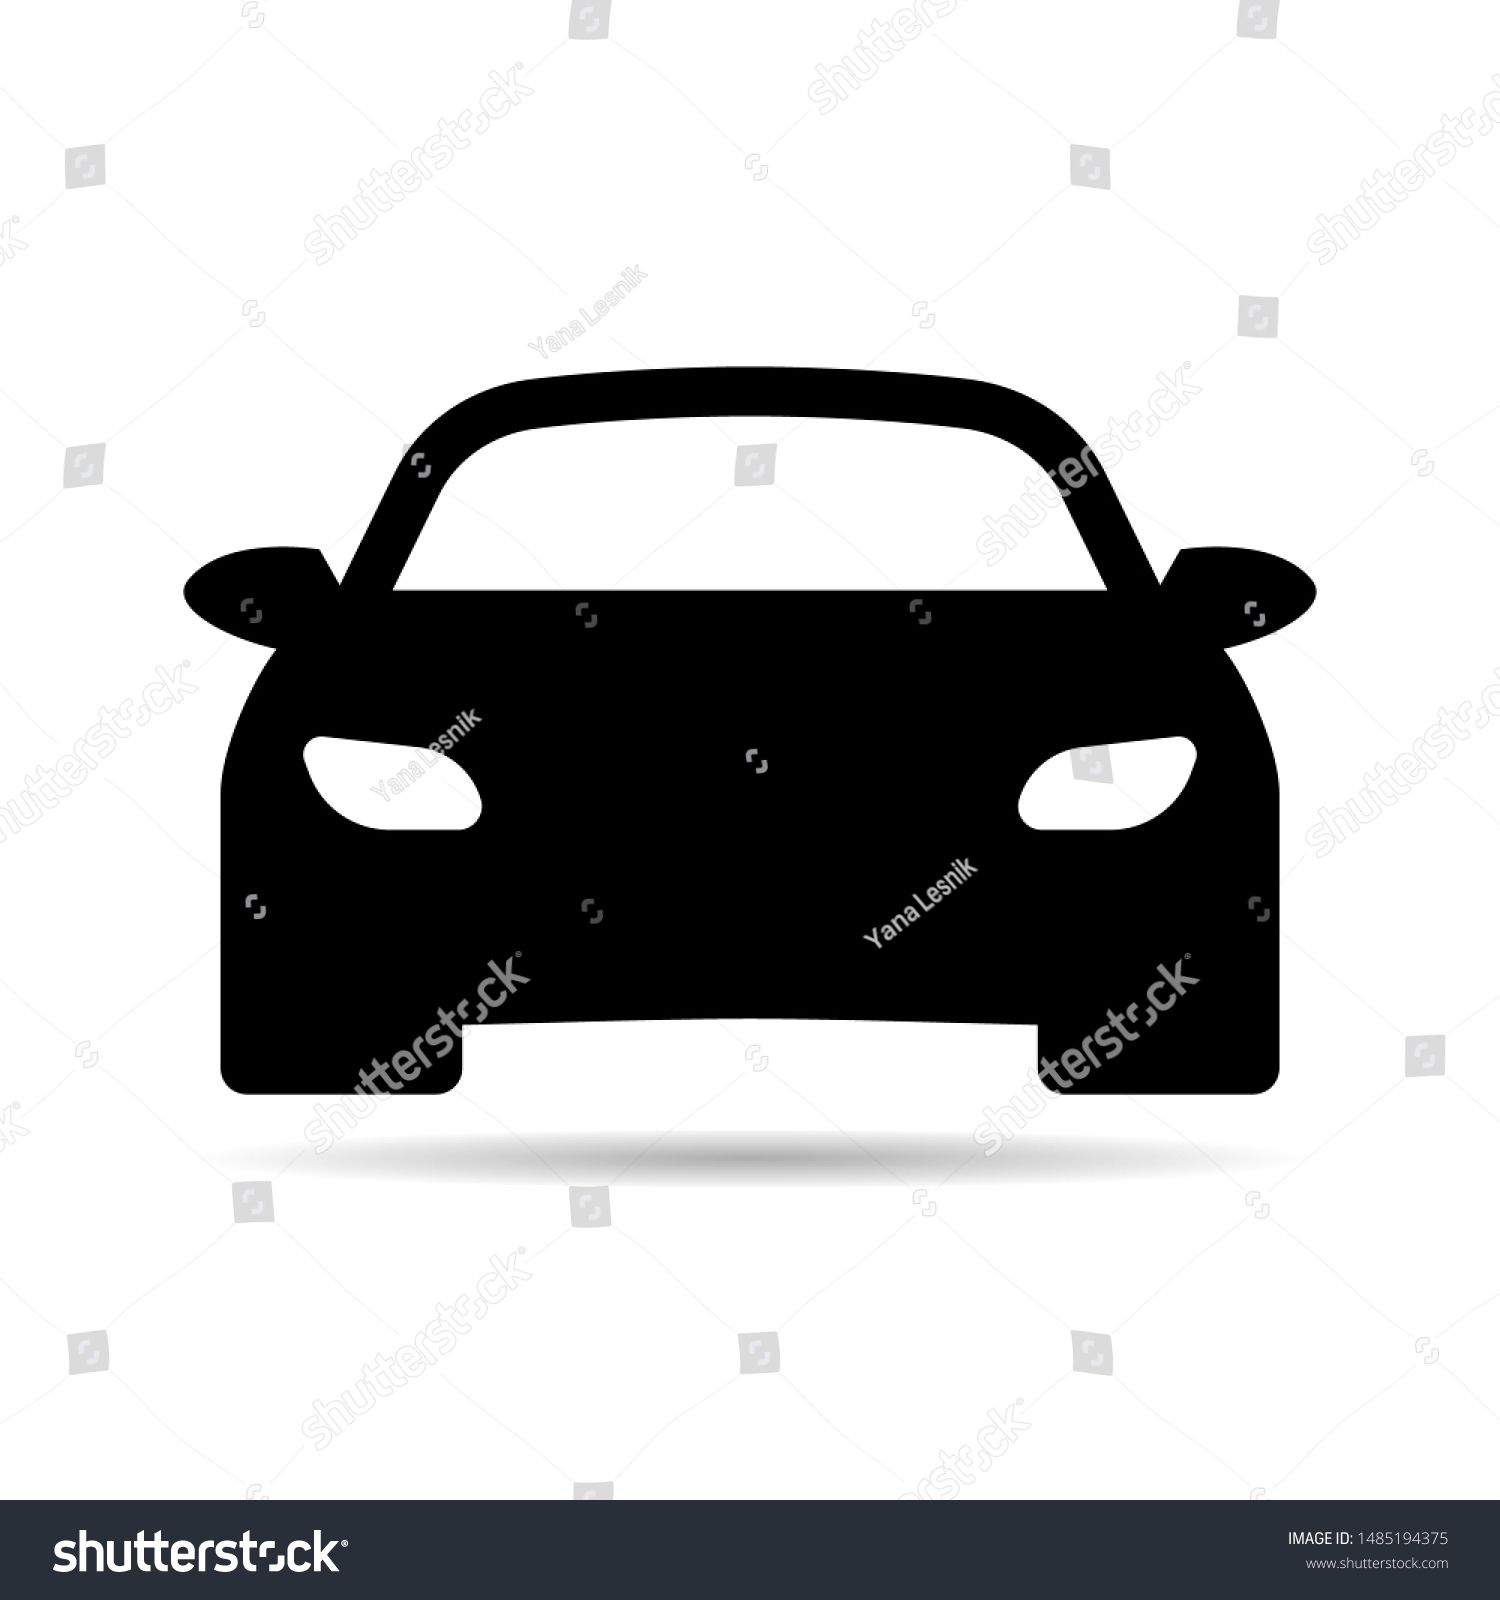 Plain Car Silhouette Icon Driving Logo Vector Image Of Vehicle Front View Of Transport Sponsored Sponsored Icon Dri Car Silhouette Poster Mockup Icon